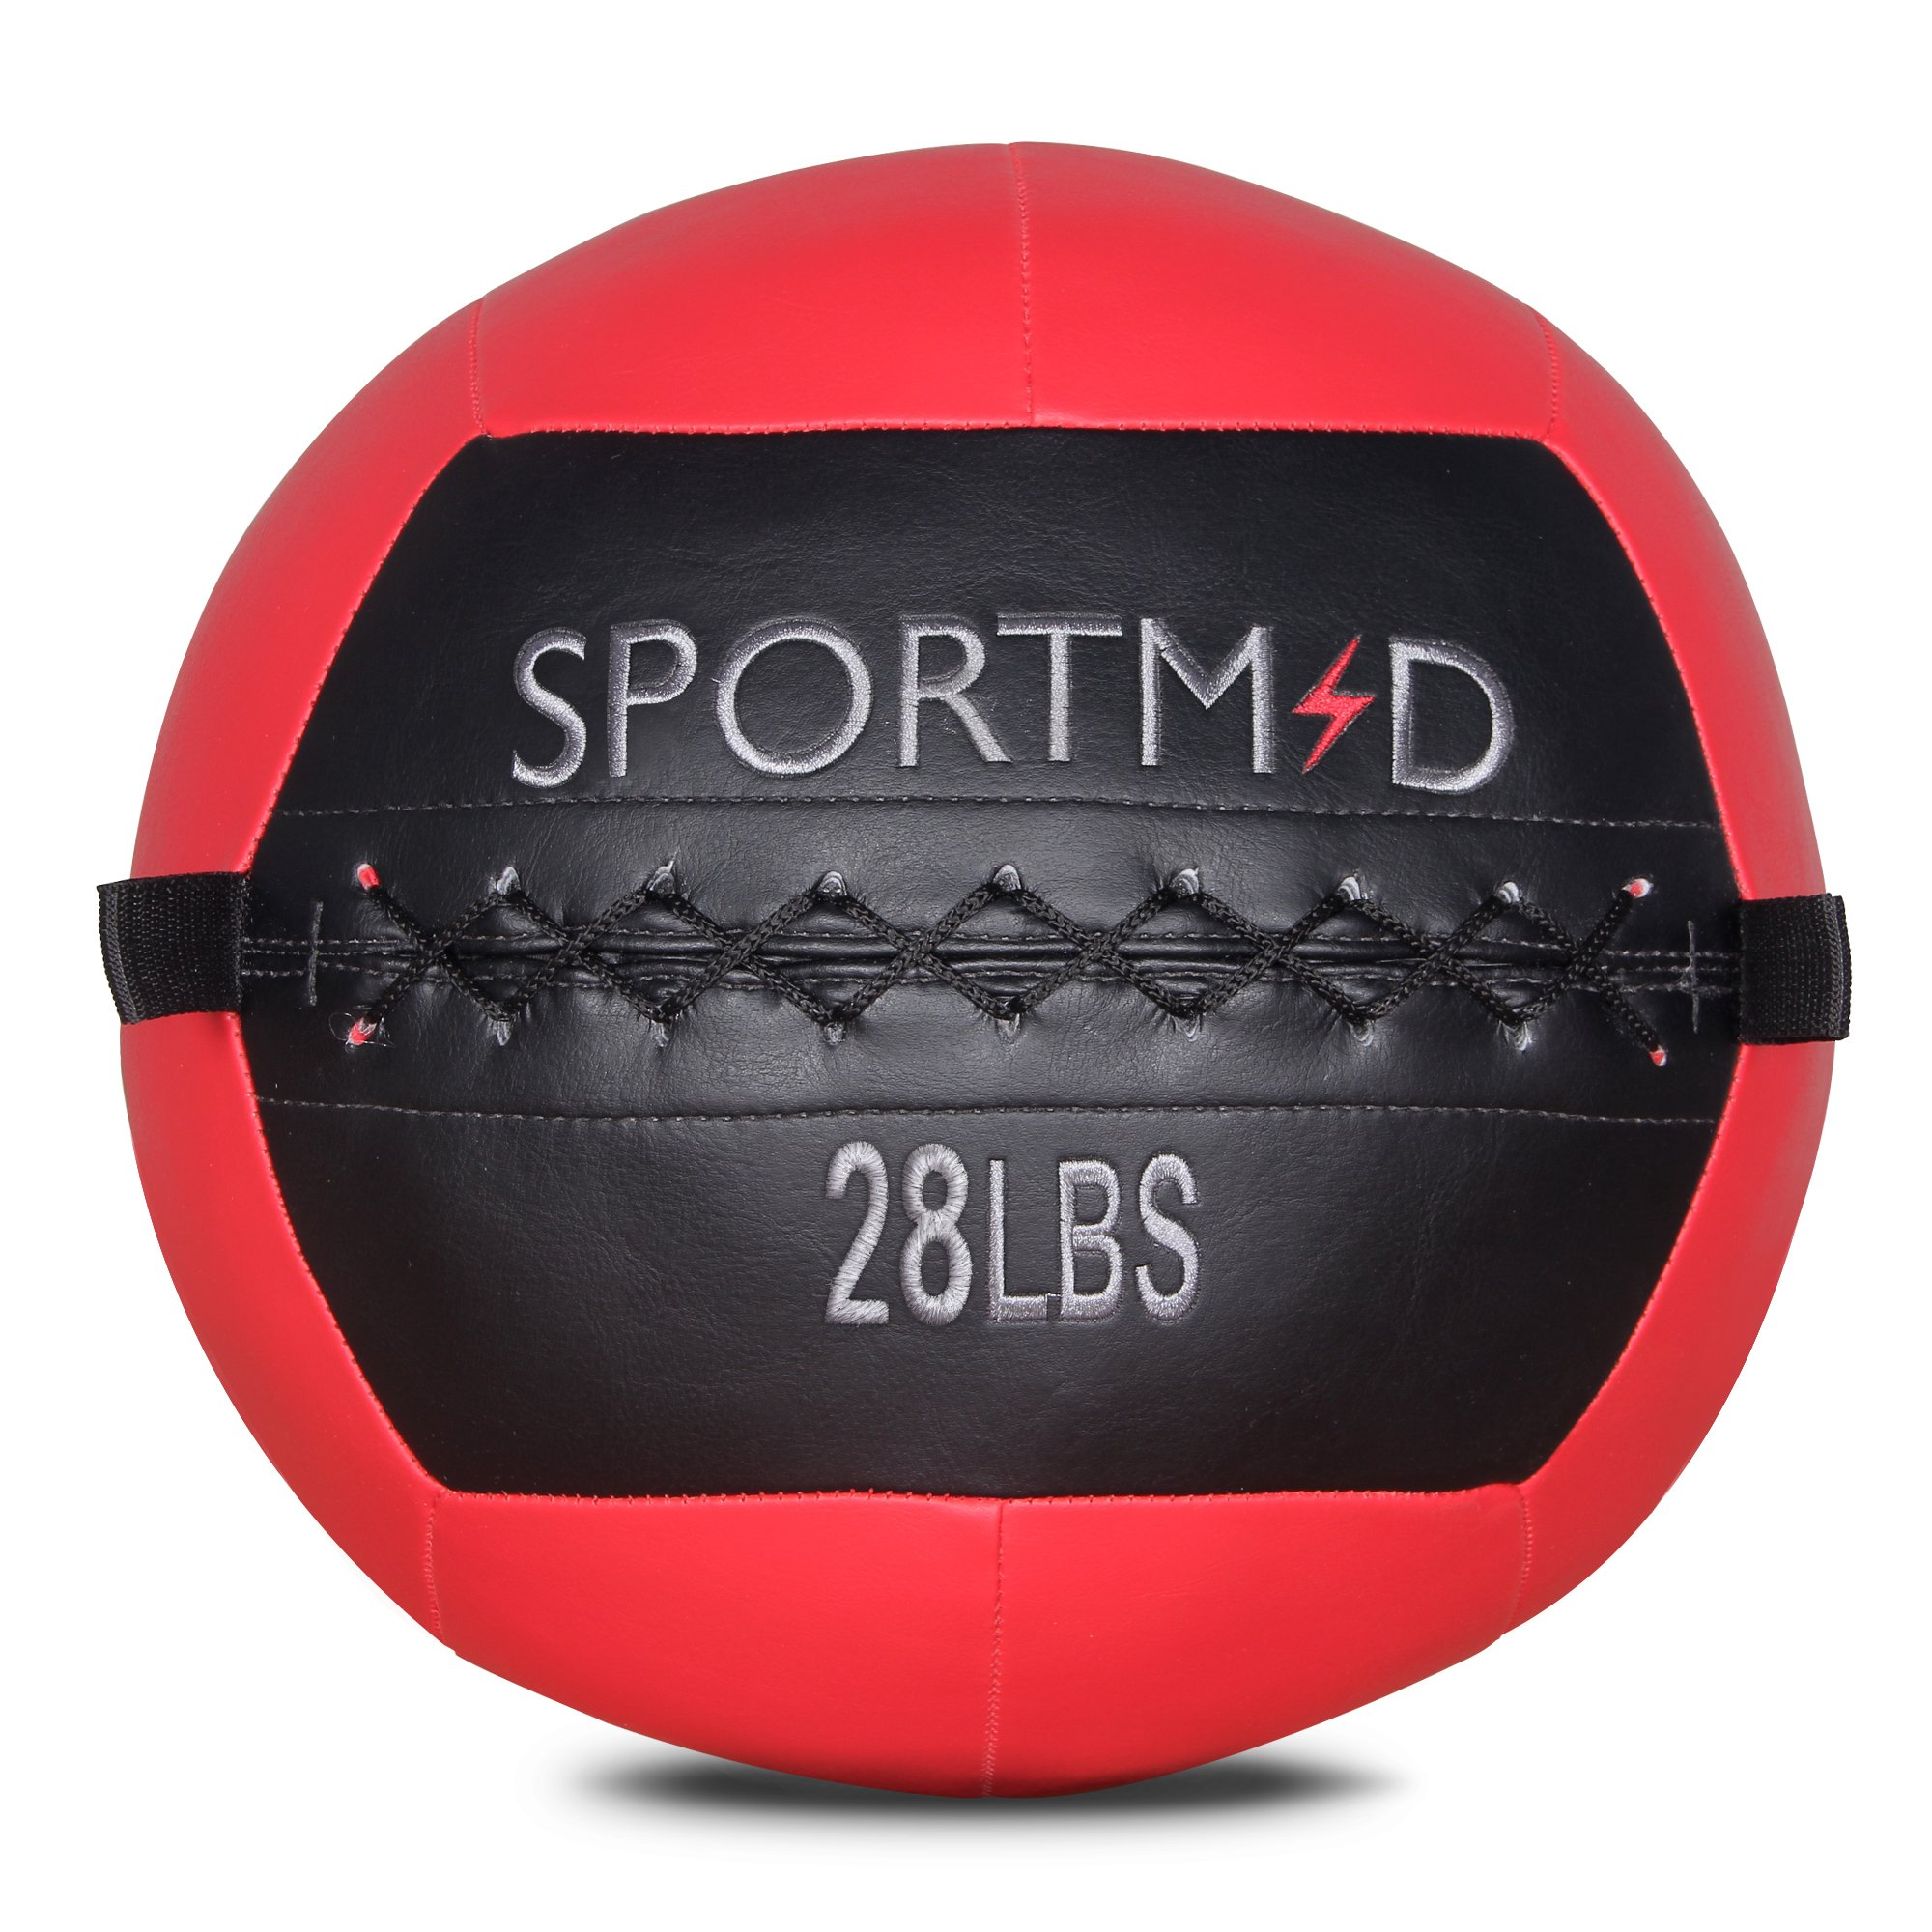 Sportmad Medicine Ball Wall Ball Soft Exercise Ball Heavy Duty Strength and Conditioning Cardio Workouts Core Training Muscle Building Balance 28 LBS (Red)